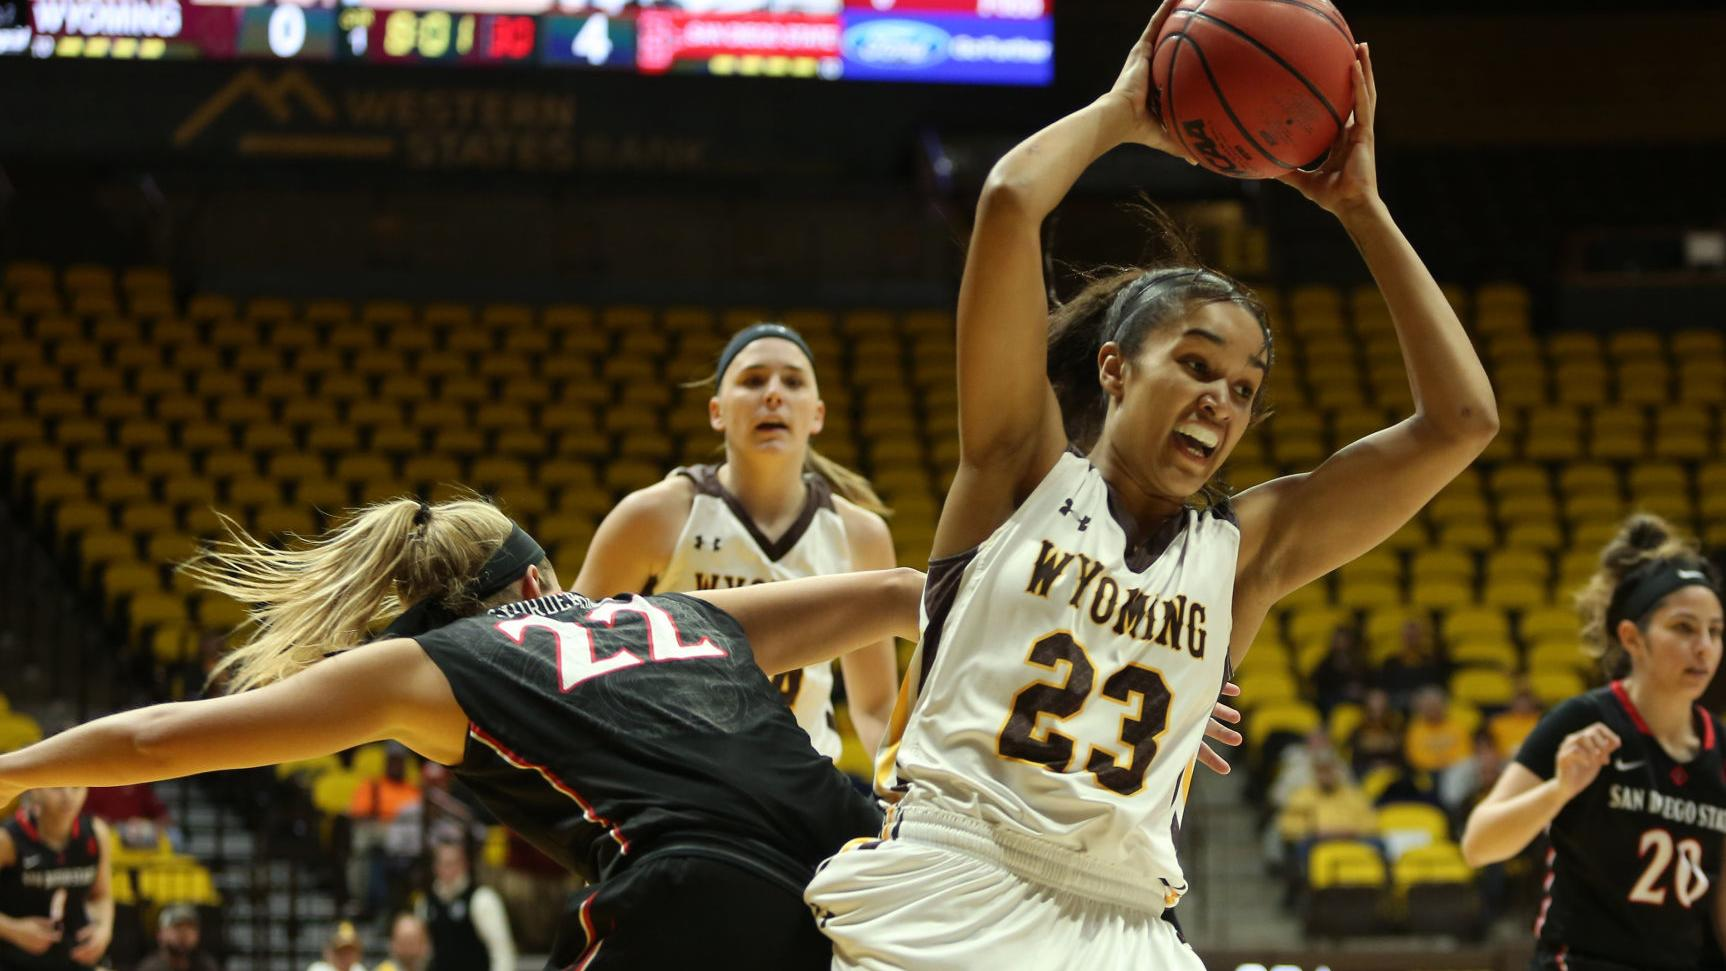 Wyoming women's basketball runs away from San Diego State in rematch, 70-50